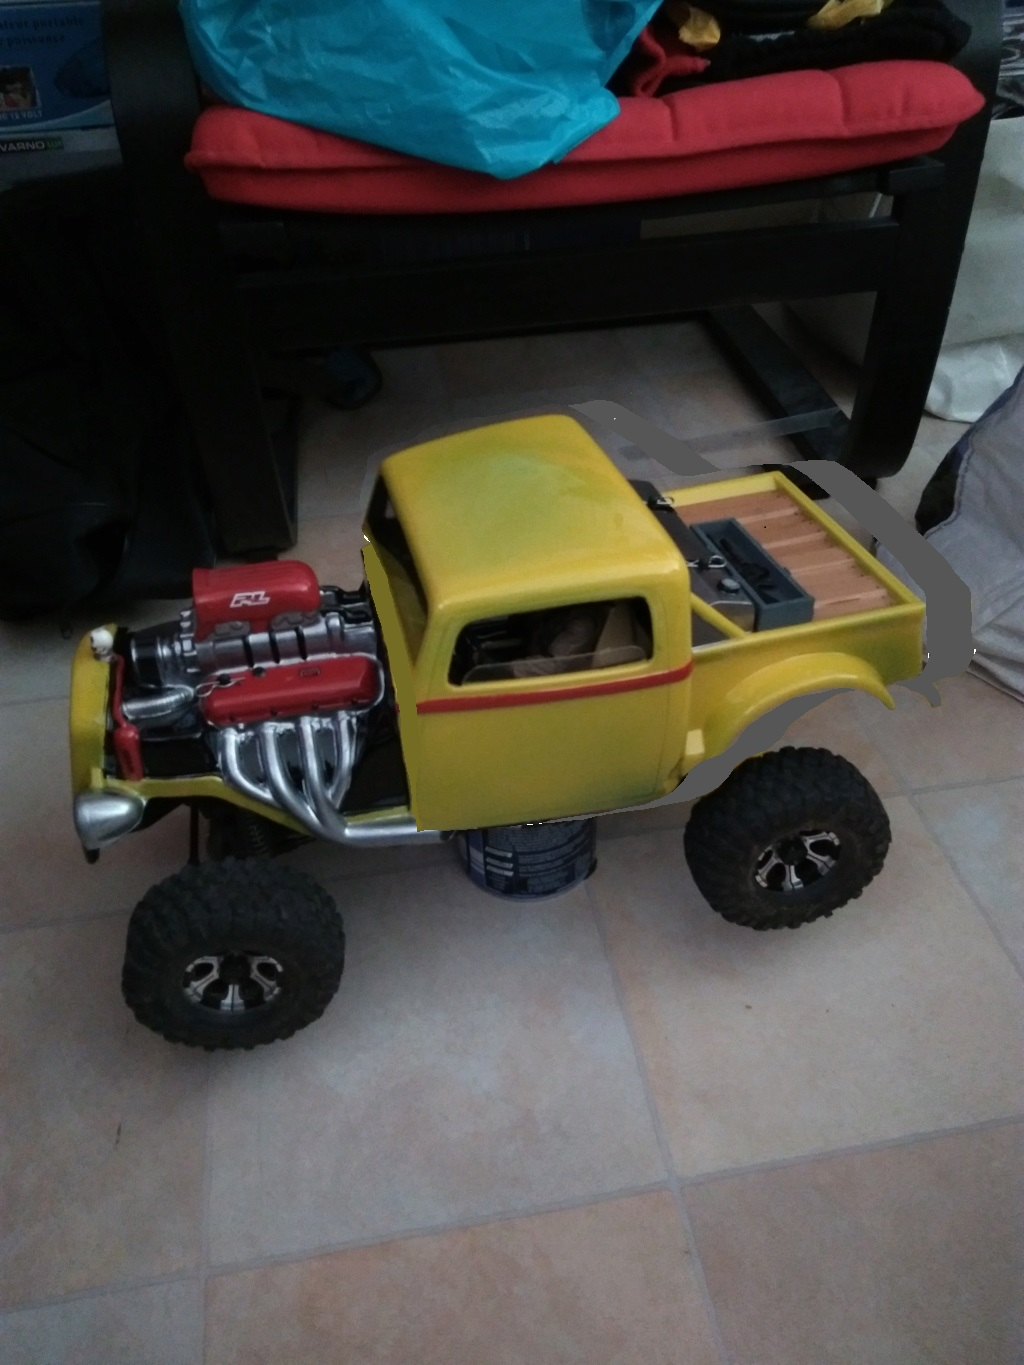 Carrosserie Hot Rod sur Chassis TRX-4 by Ruru - Page 2 Propal11